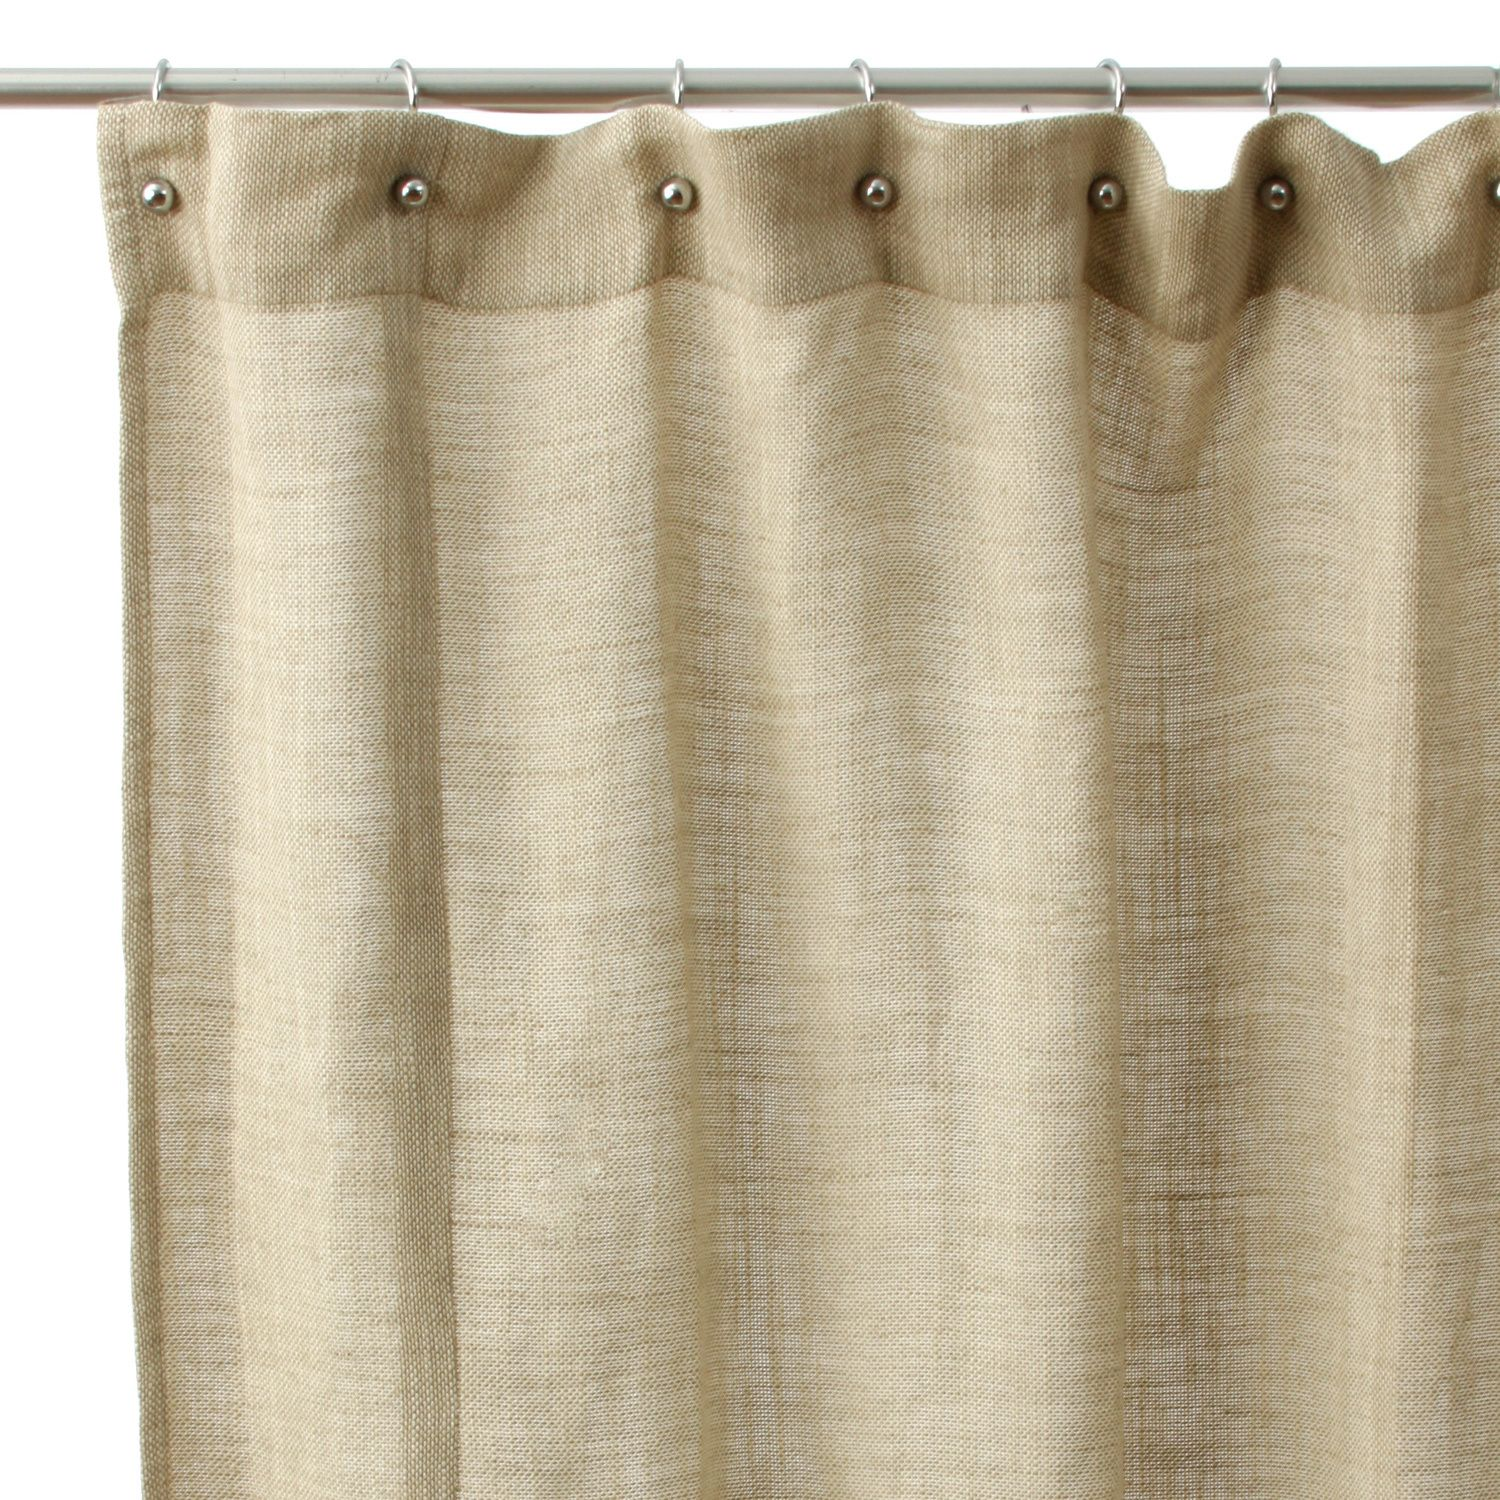 A Unique Burlap Texture Adds Rustic Appeal To This Jack Shower Curtain Bring Classic Your Bathroom Decor Created With Pure Cotton